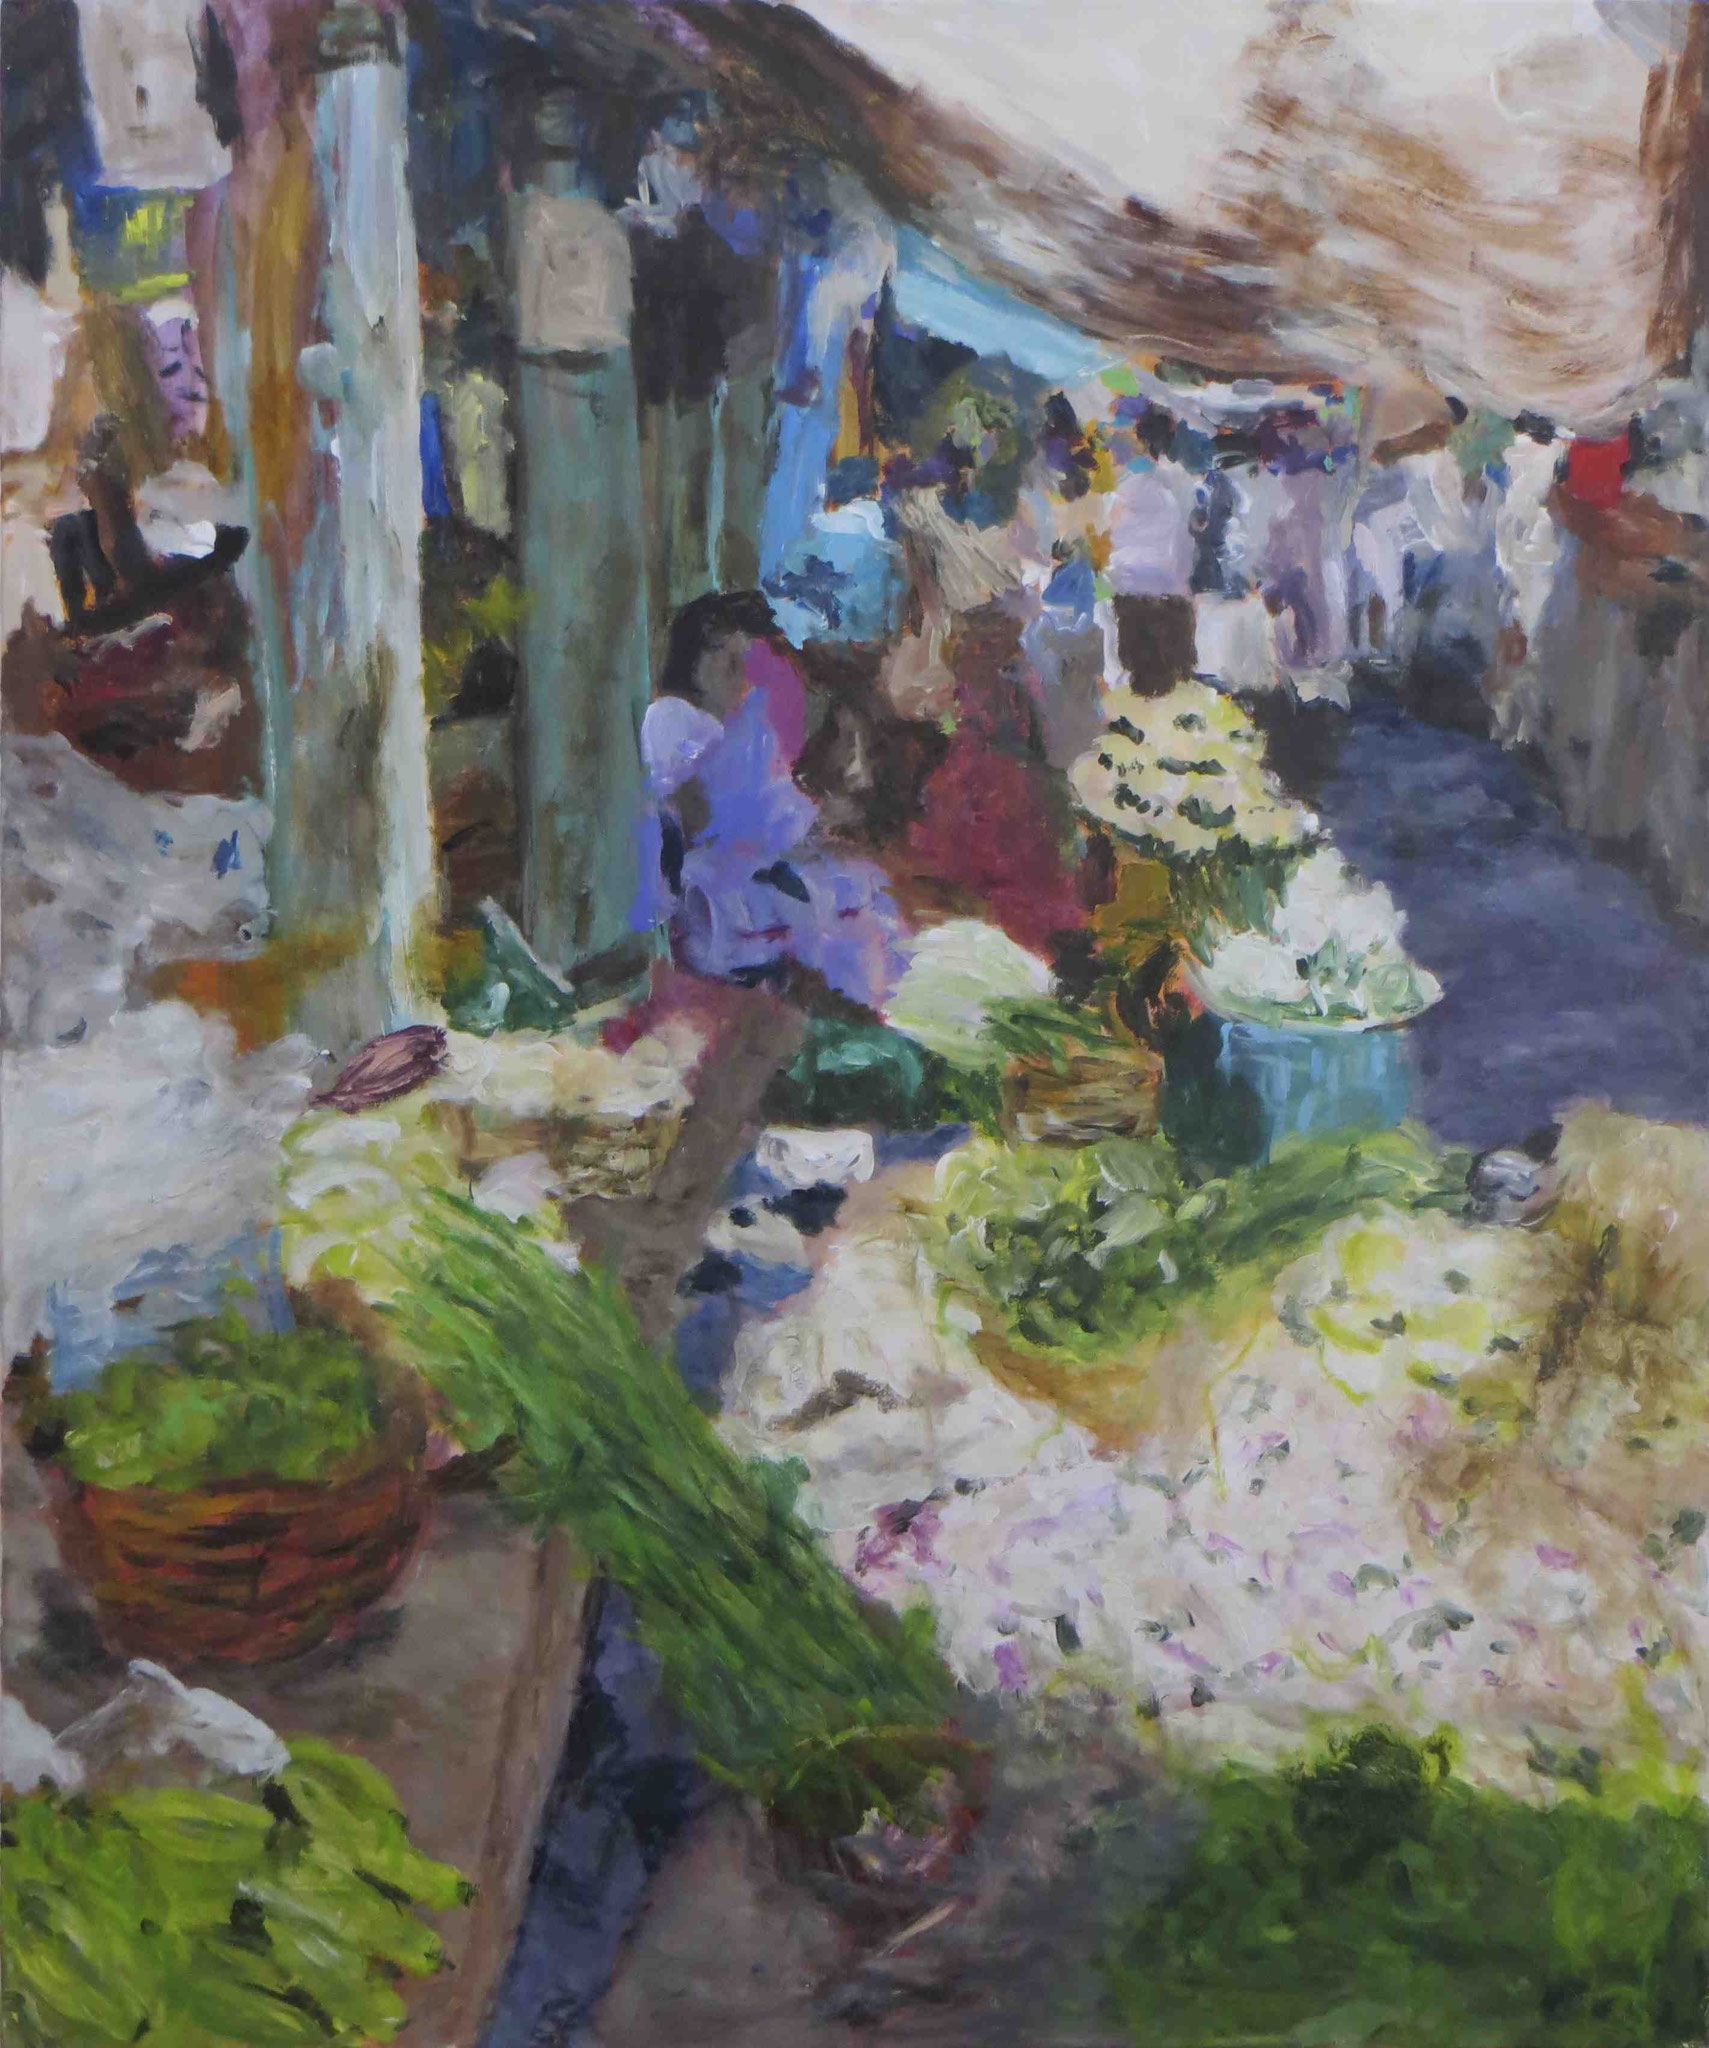 Morning Market Pondicherry, Acryl auf Lwd, 120x100, 2012